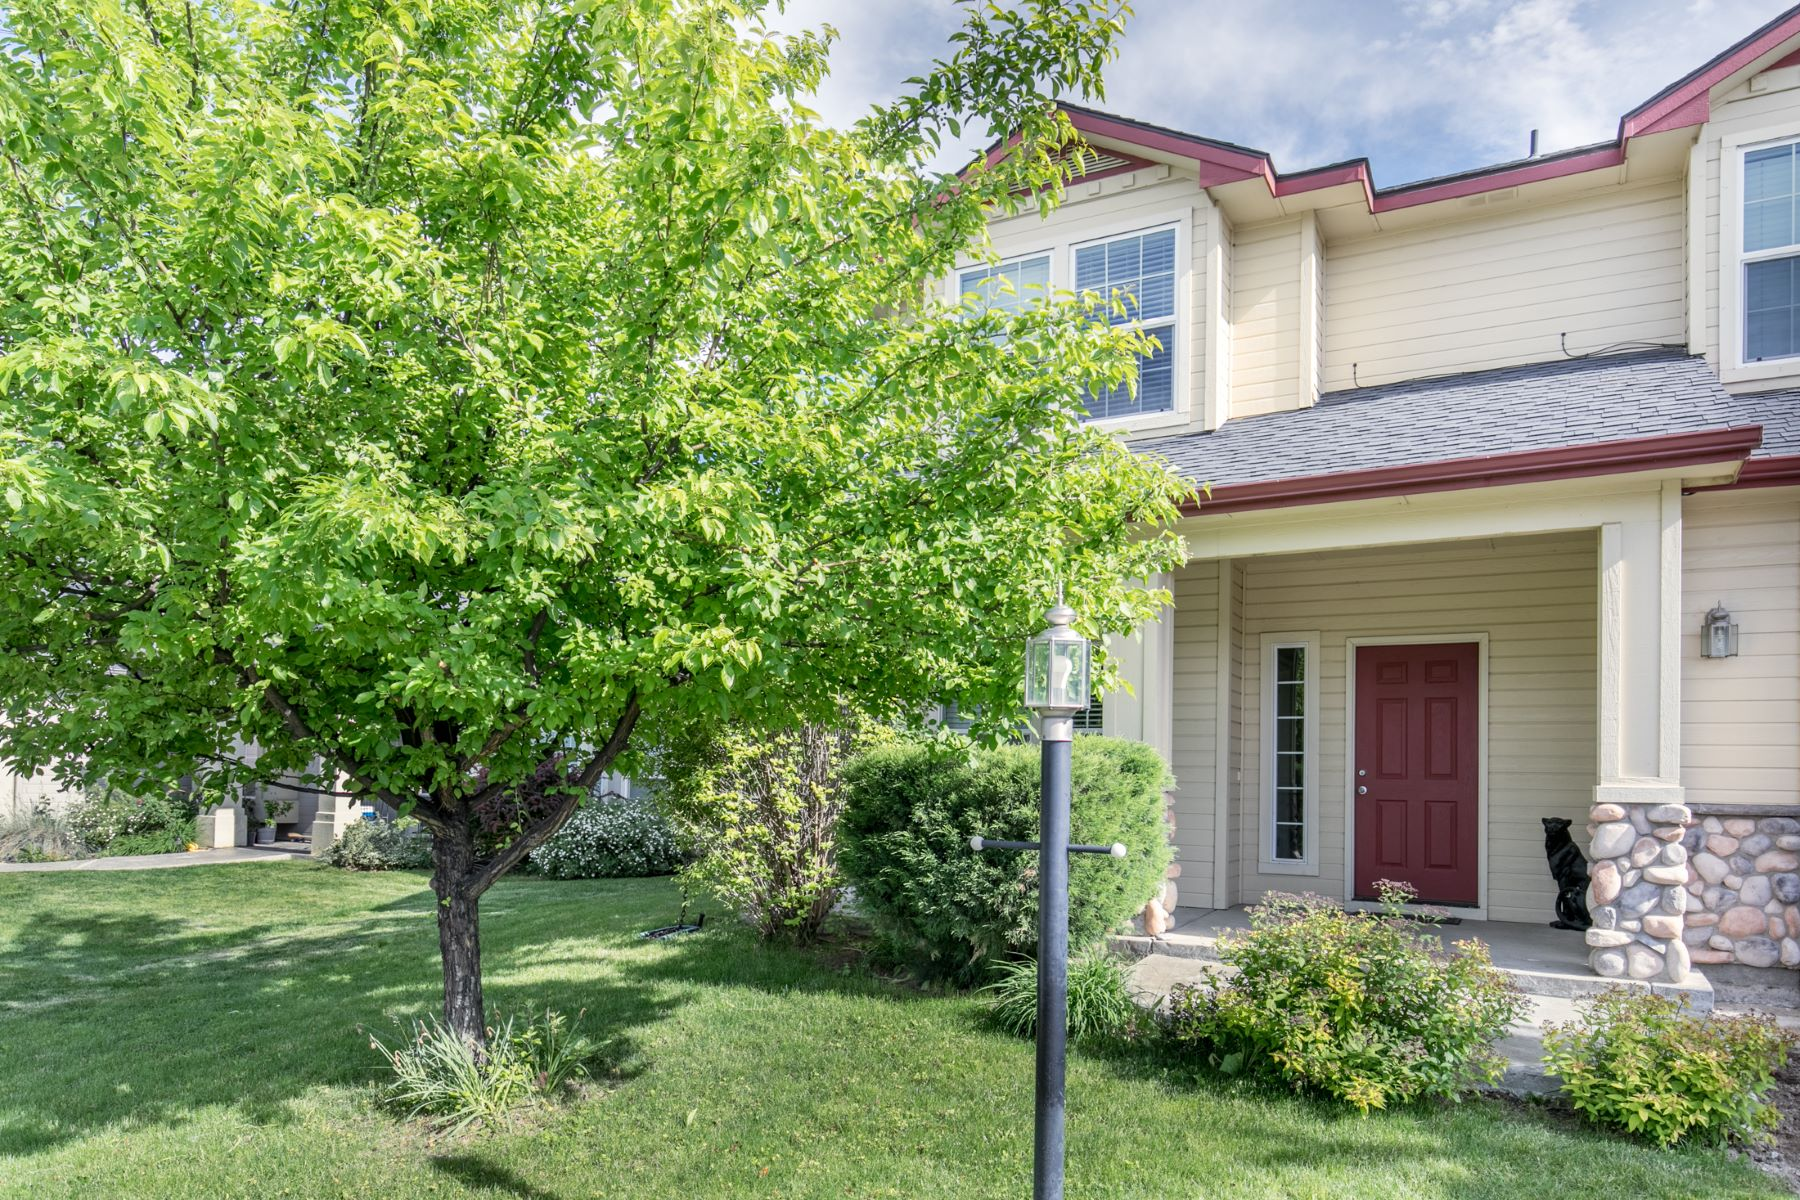 Single Family Homes for Sale at 2329 Apgar Creek Dr., Meridian 2329 W Apgar Creek Dr Meridian, Idaho 83642 United States